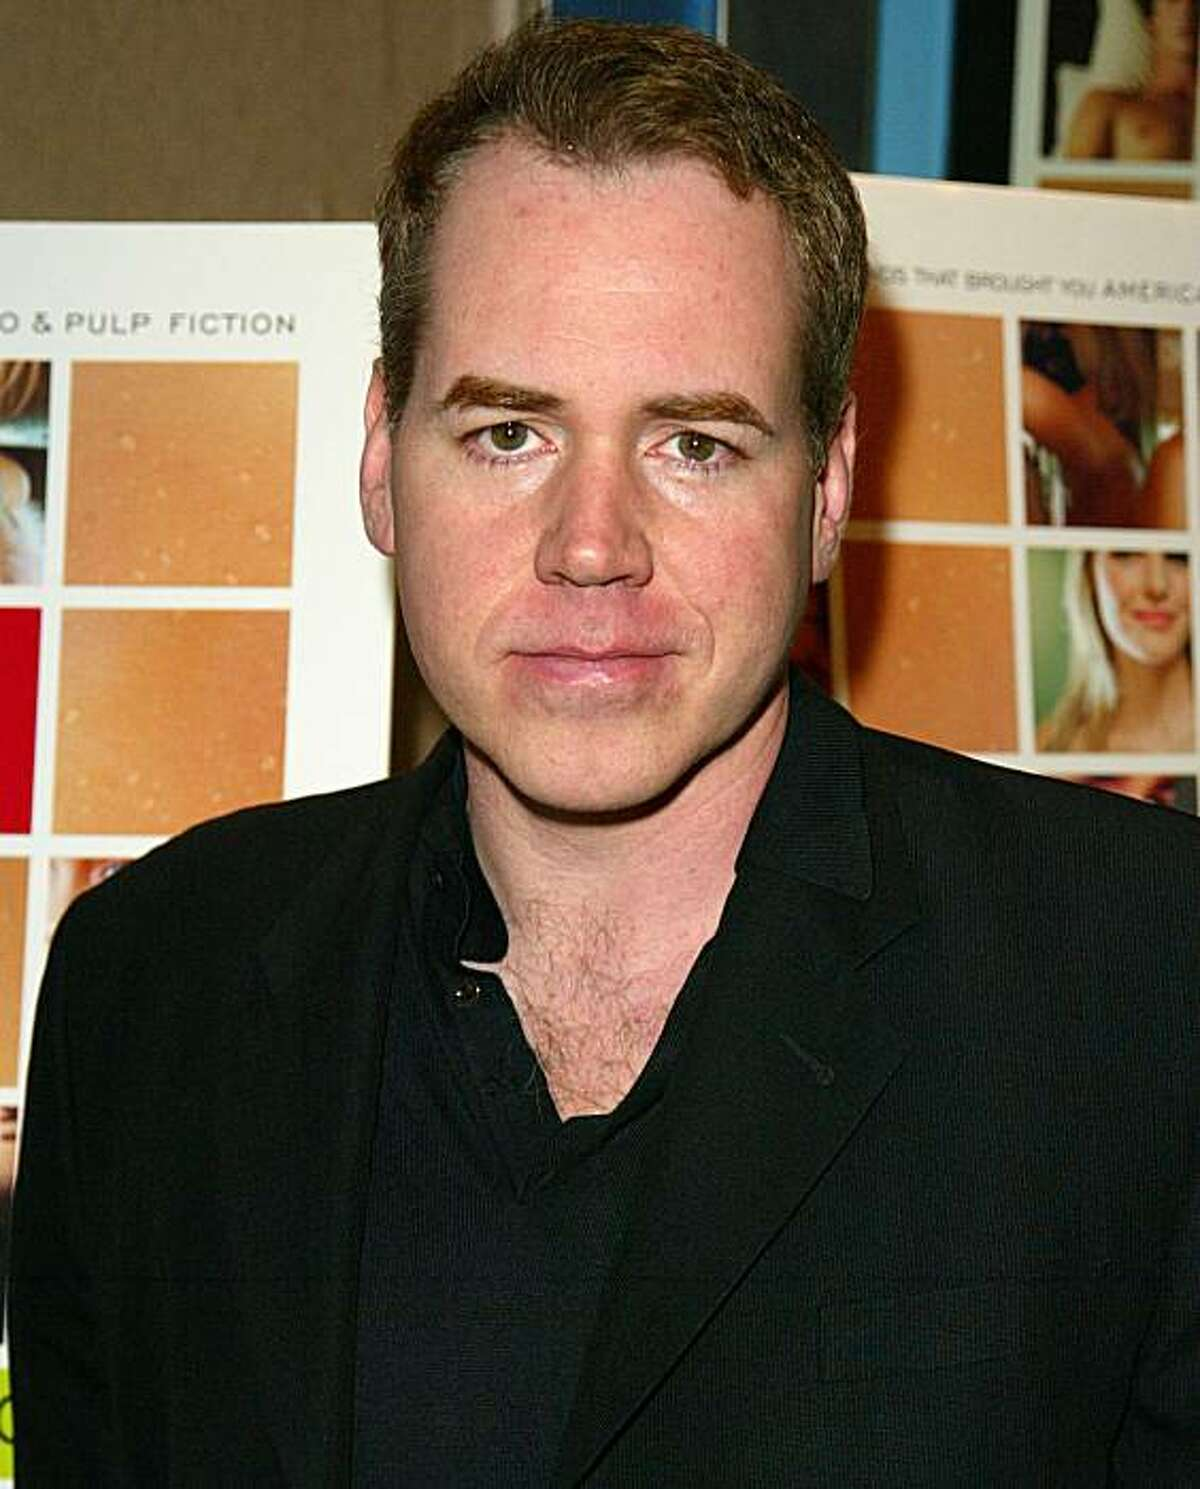 NEW YORK - OCTOBER 10: Novelist Bret Easton Ellis attends the New York screening of 'The Rules Of Attraction' at The Clearview Chelsea West Theater on October 10, 2002 in New York City. (Photo by Matthew Peyton/Getty Images)